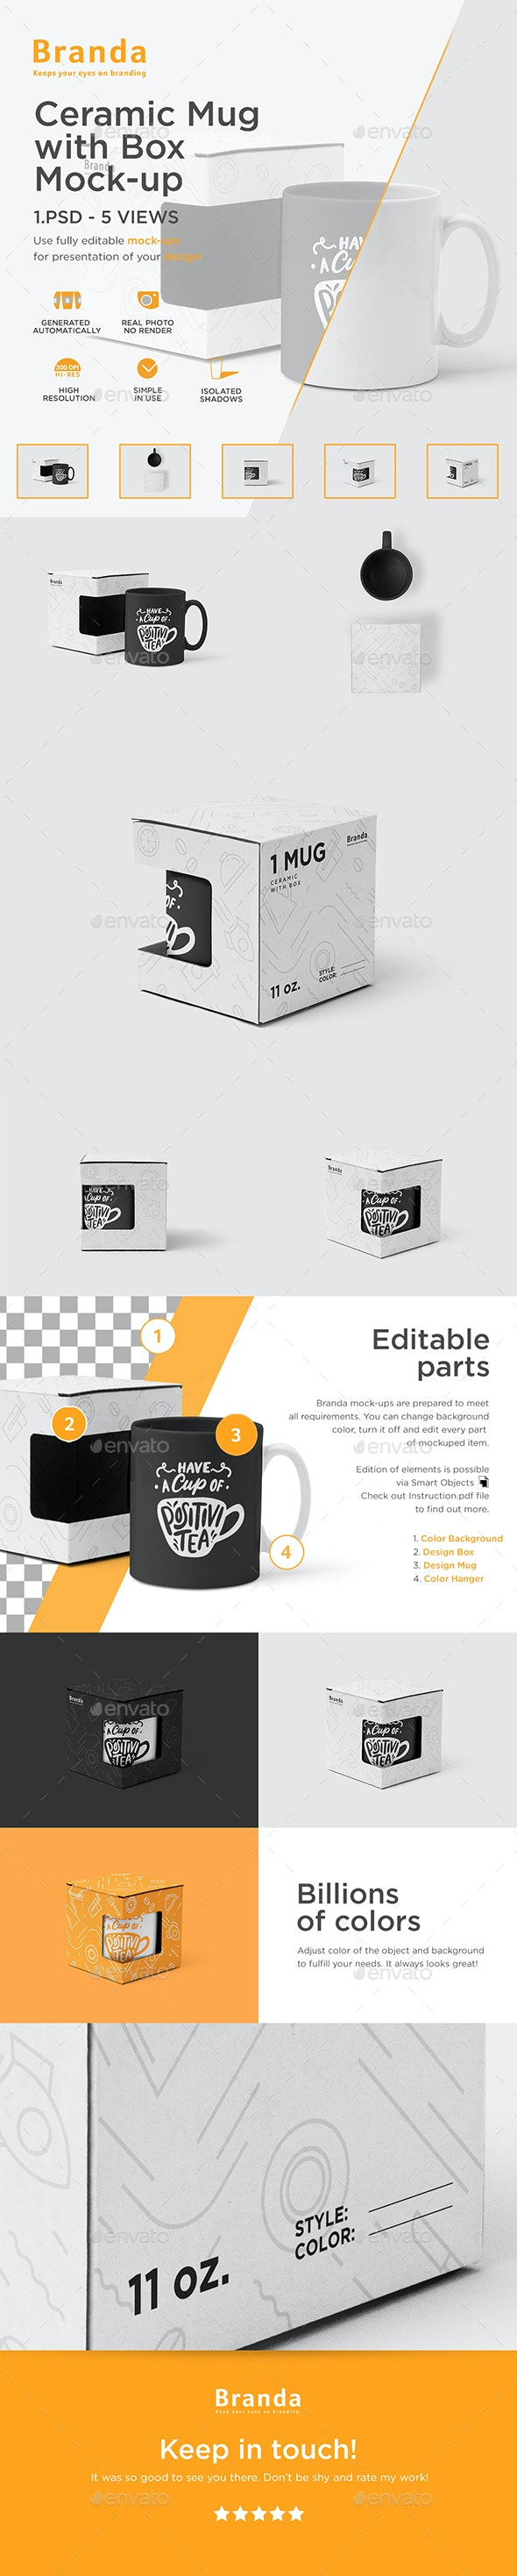 Ceramic Mug with Box Mock-up - Food and Drink Packaging